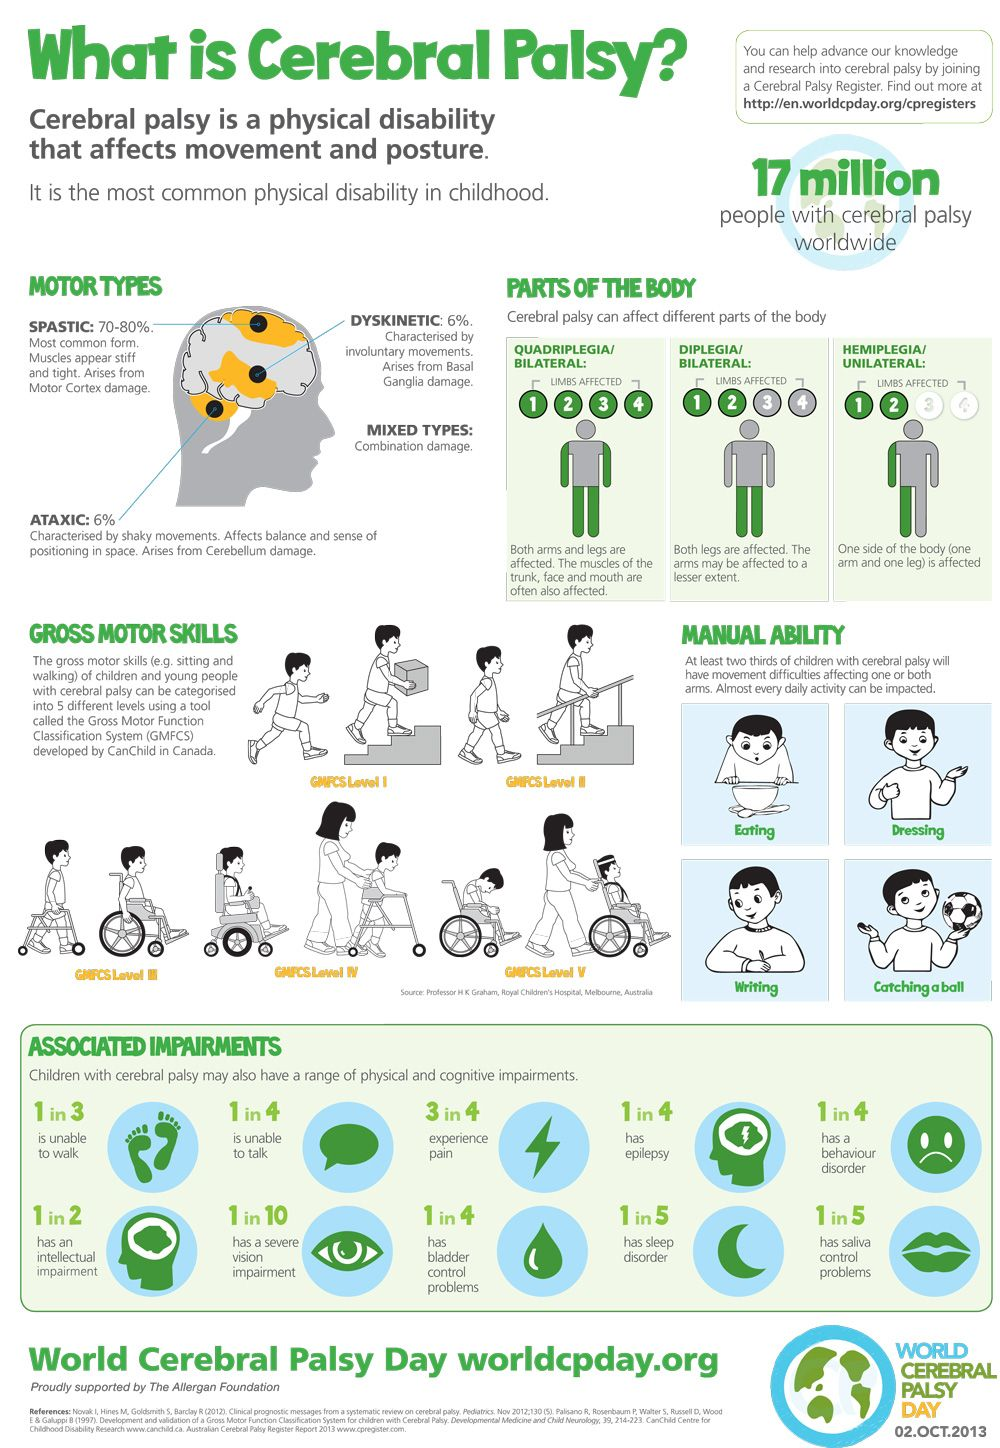 Cerebral Palsy is the result of a brain injury or abnormal development of the brain. Learn more!